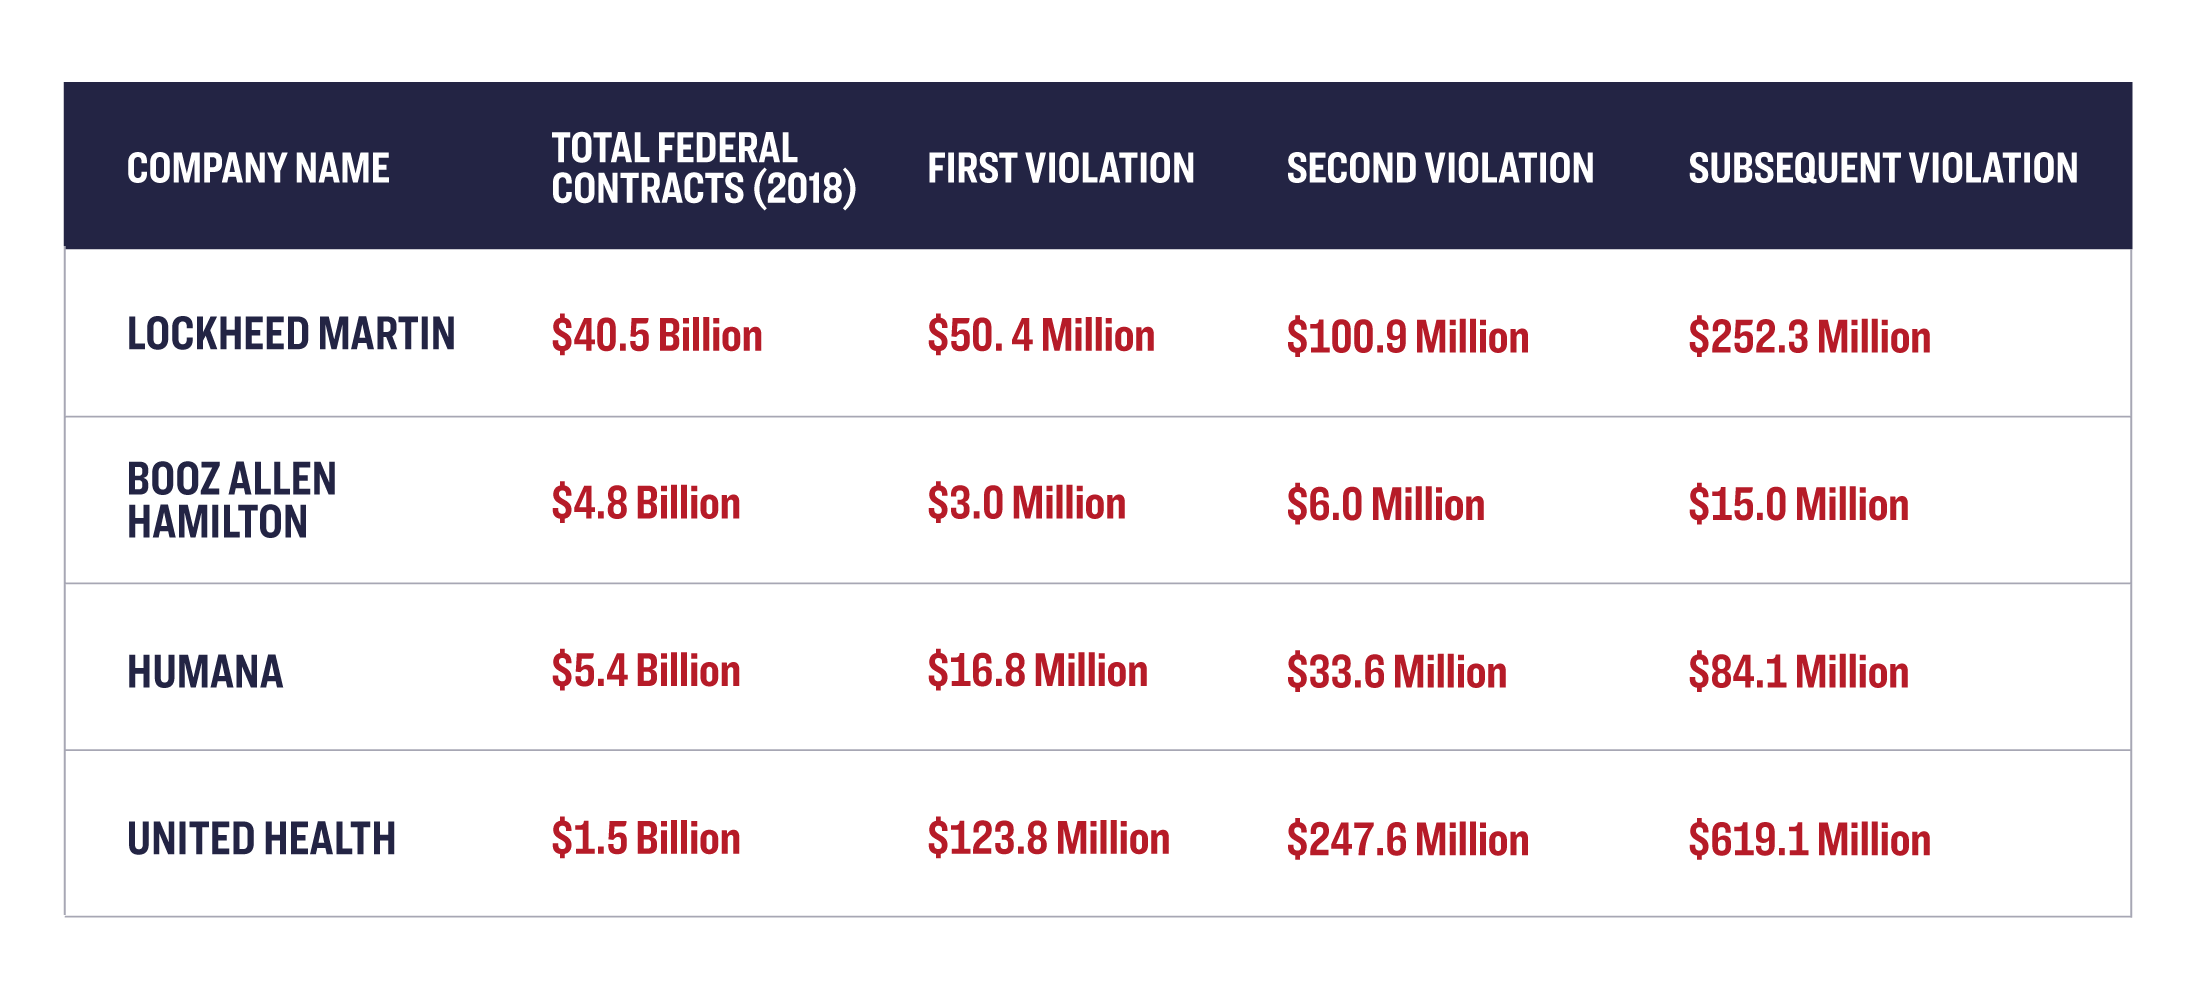 Table of Giant Contractors and Potential Fines for Violating Hiring Restrictions (Based on 2018 Profits). Lockheed Martin: Total federal contracts (2018) $40.5 Billion, First Violation: $50.4 Million, Second Violation: $100.9 Million, Subsequent Violation $252.3 Million. Booz Allen Hamilton: Total federal contracts (2018) $4.8 Billion, First Violation: $3.0 Million, Second Violation: $6.0 Million, Subsequent Violation $15.0 Million.  Humana: Total federal contracts (2018) $5.4 Billion, First Violation: $16.8 Million, Second Violation: $33.6 Million, Subsequent Violation $84.1 Million. United Health: Total federal contracts (2018) $1.5 Billion, First Violation: $123.8 Million, Second Violation: $247.8 Million, Subsequent Violation $619.1 Million.